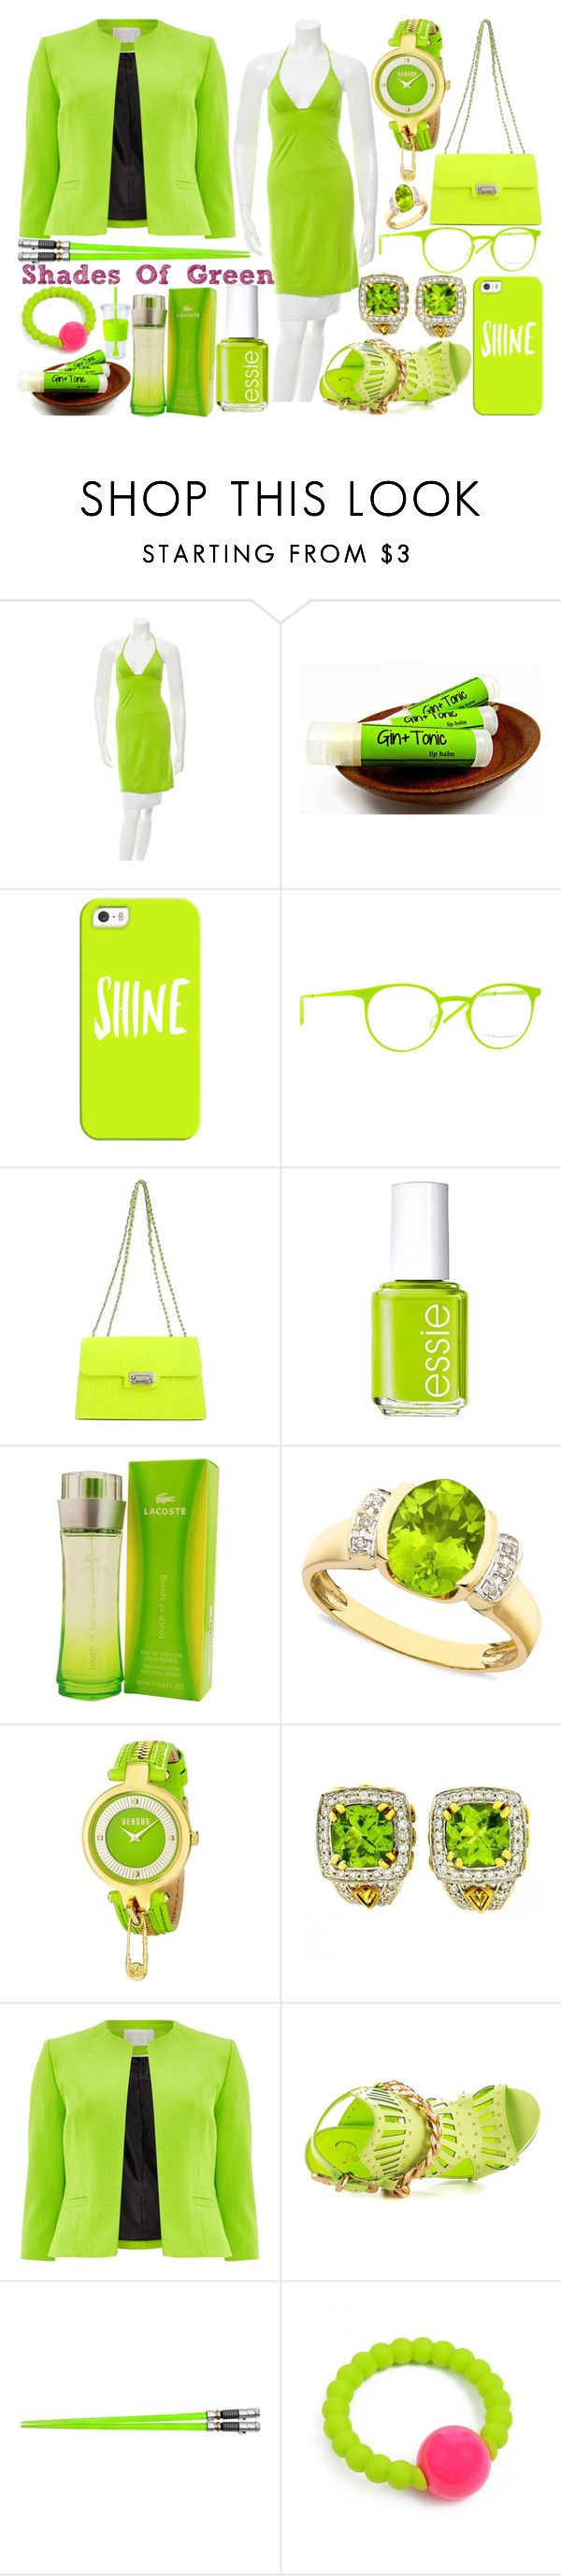 """""""Shades Of Green #5"""" by quinn-avina ❤ liked on Polyvore featuring Christian Lacroix, Casetify, Italia Independent, Moschino, Essie, Lacoste, Versus, Charles Krypell, Windsmoor and Privileged"""